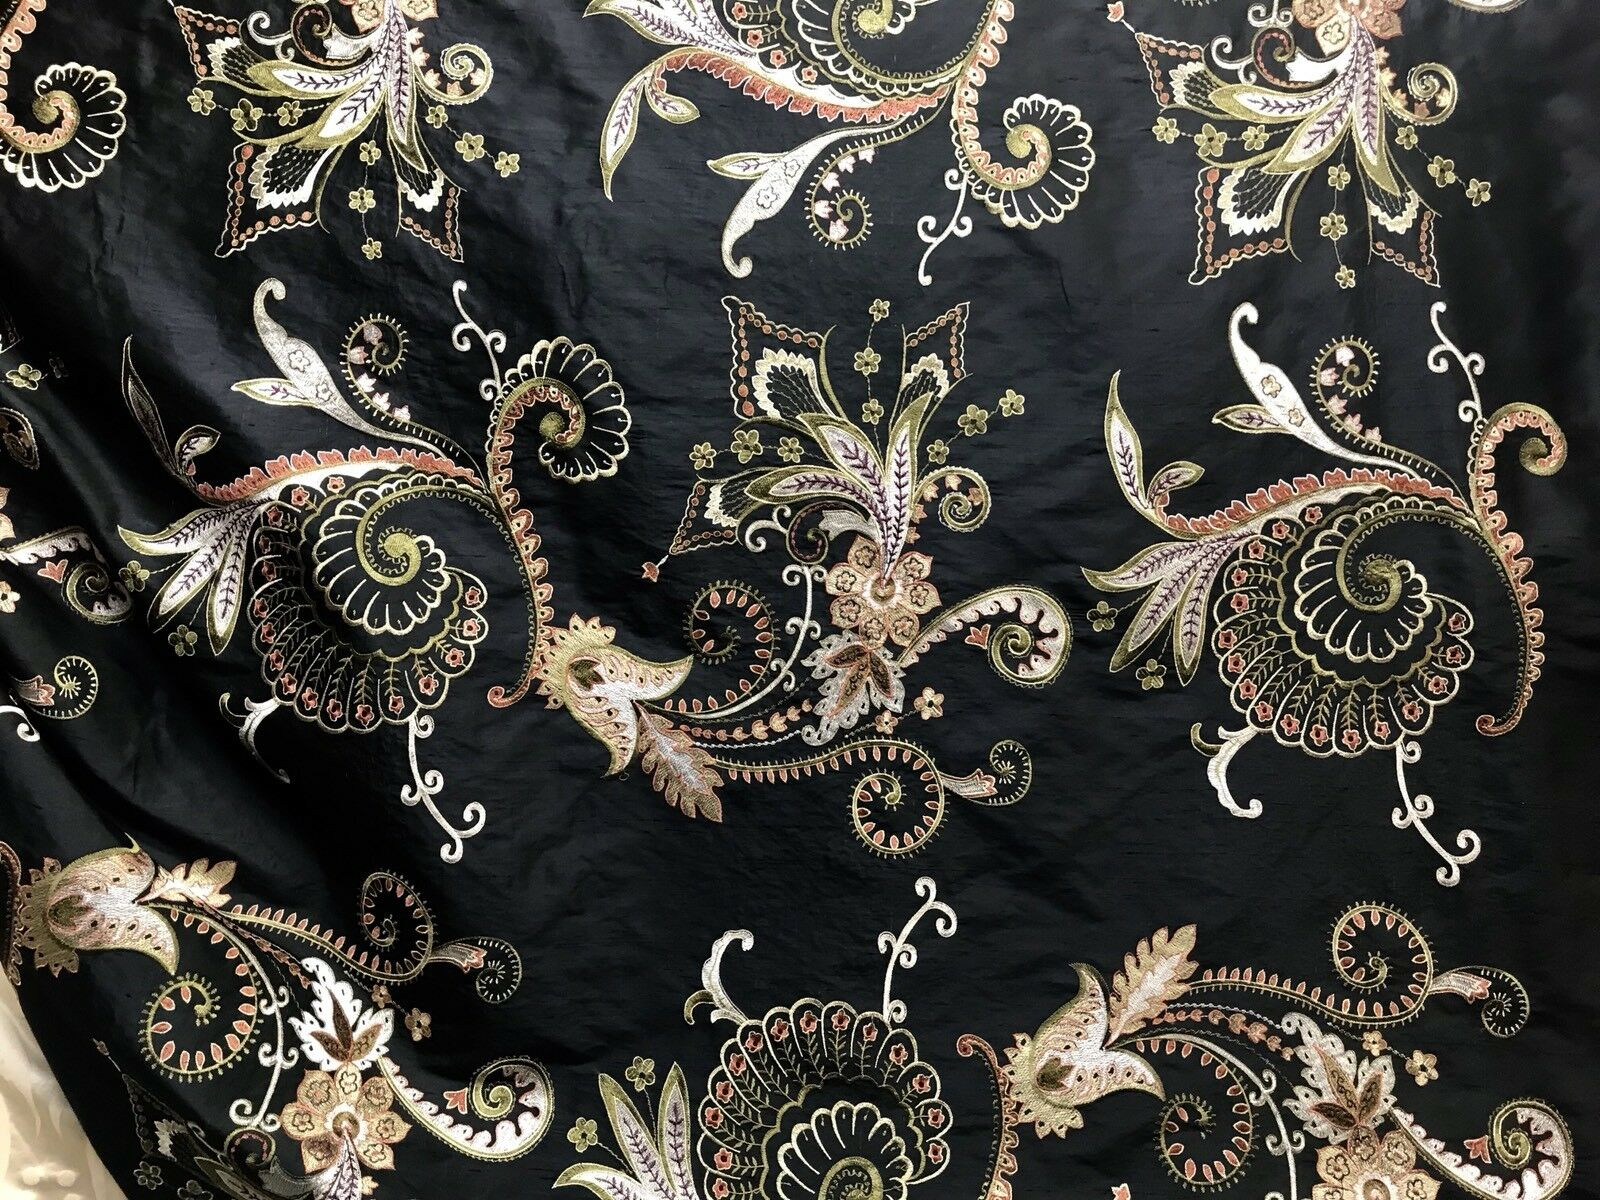 SWATCH Designer 100% Silk Taffeta Floral Embroidered Fabric - Black